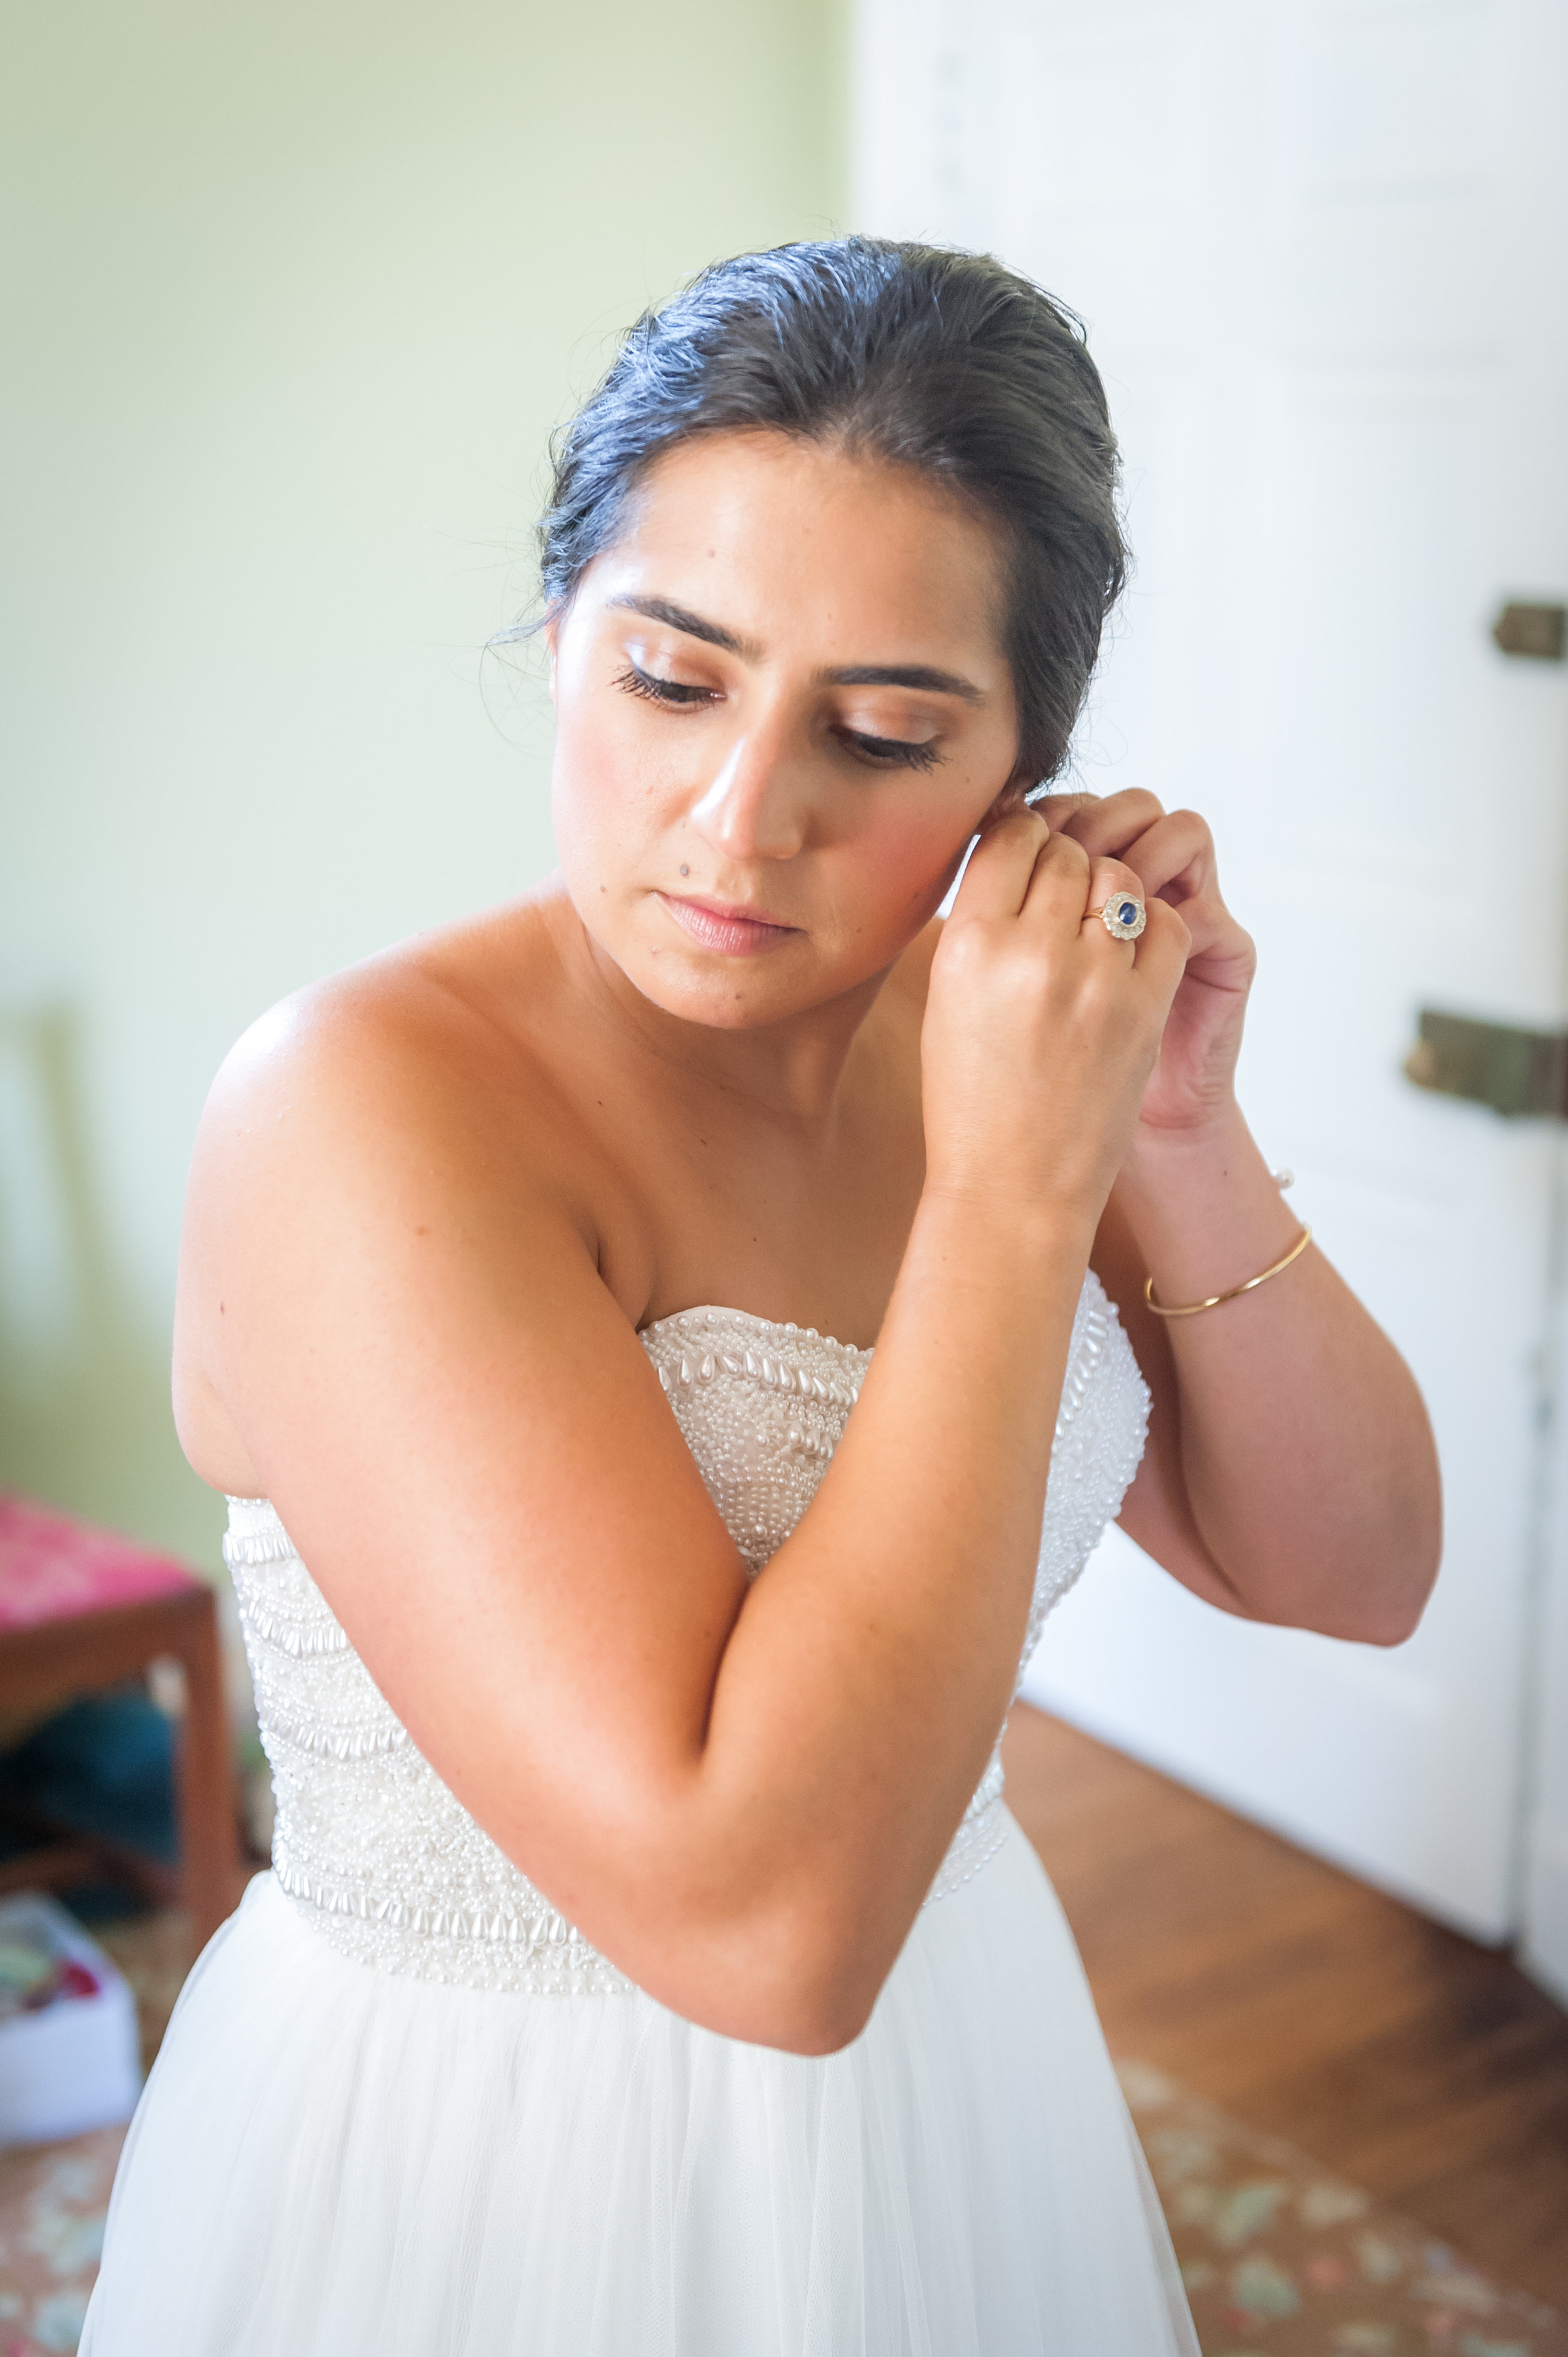 062318 VA Sara Smith + Rob - Jamie Zunno Photography LC DHGettingReady-54.jpg